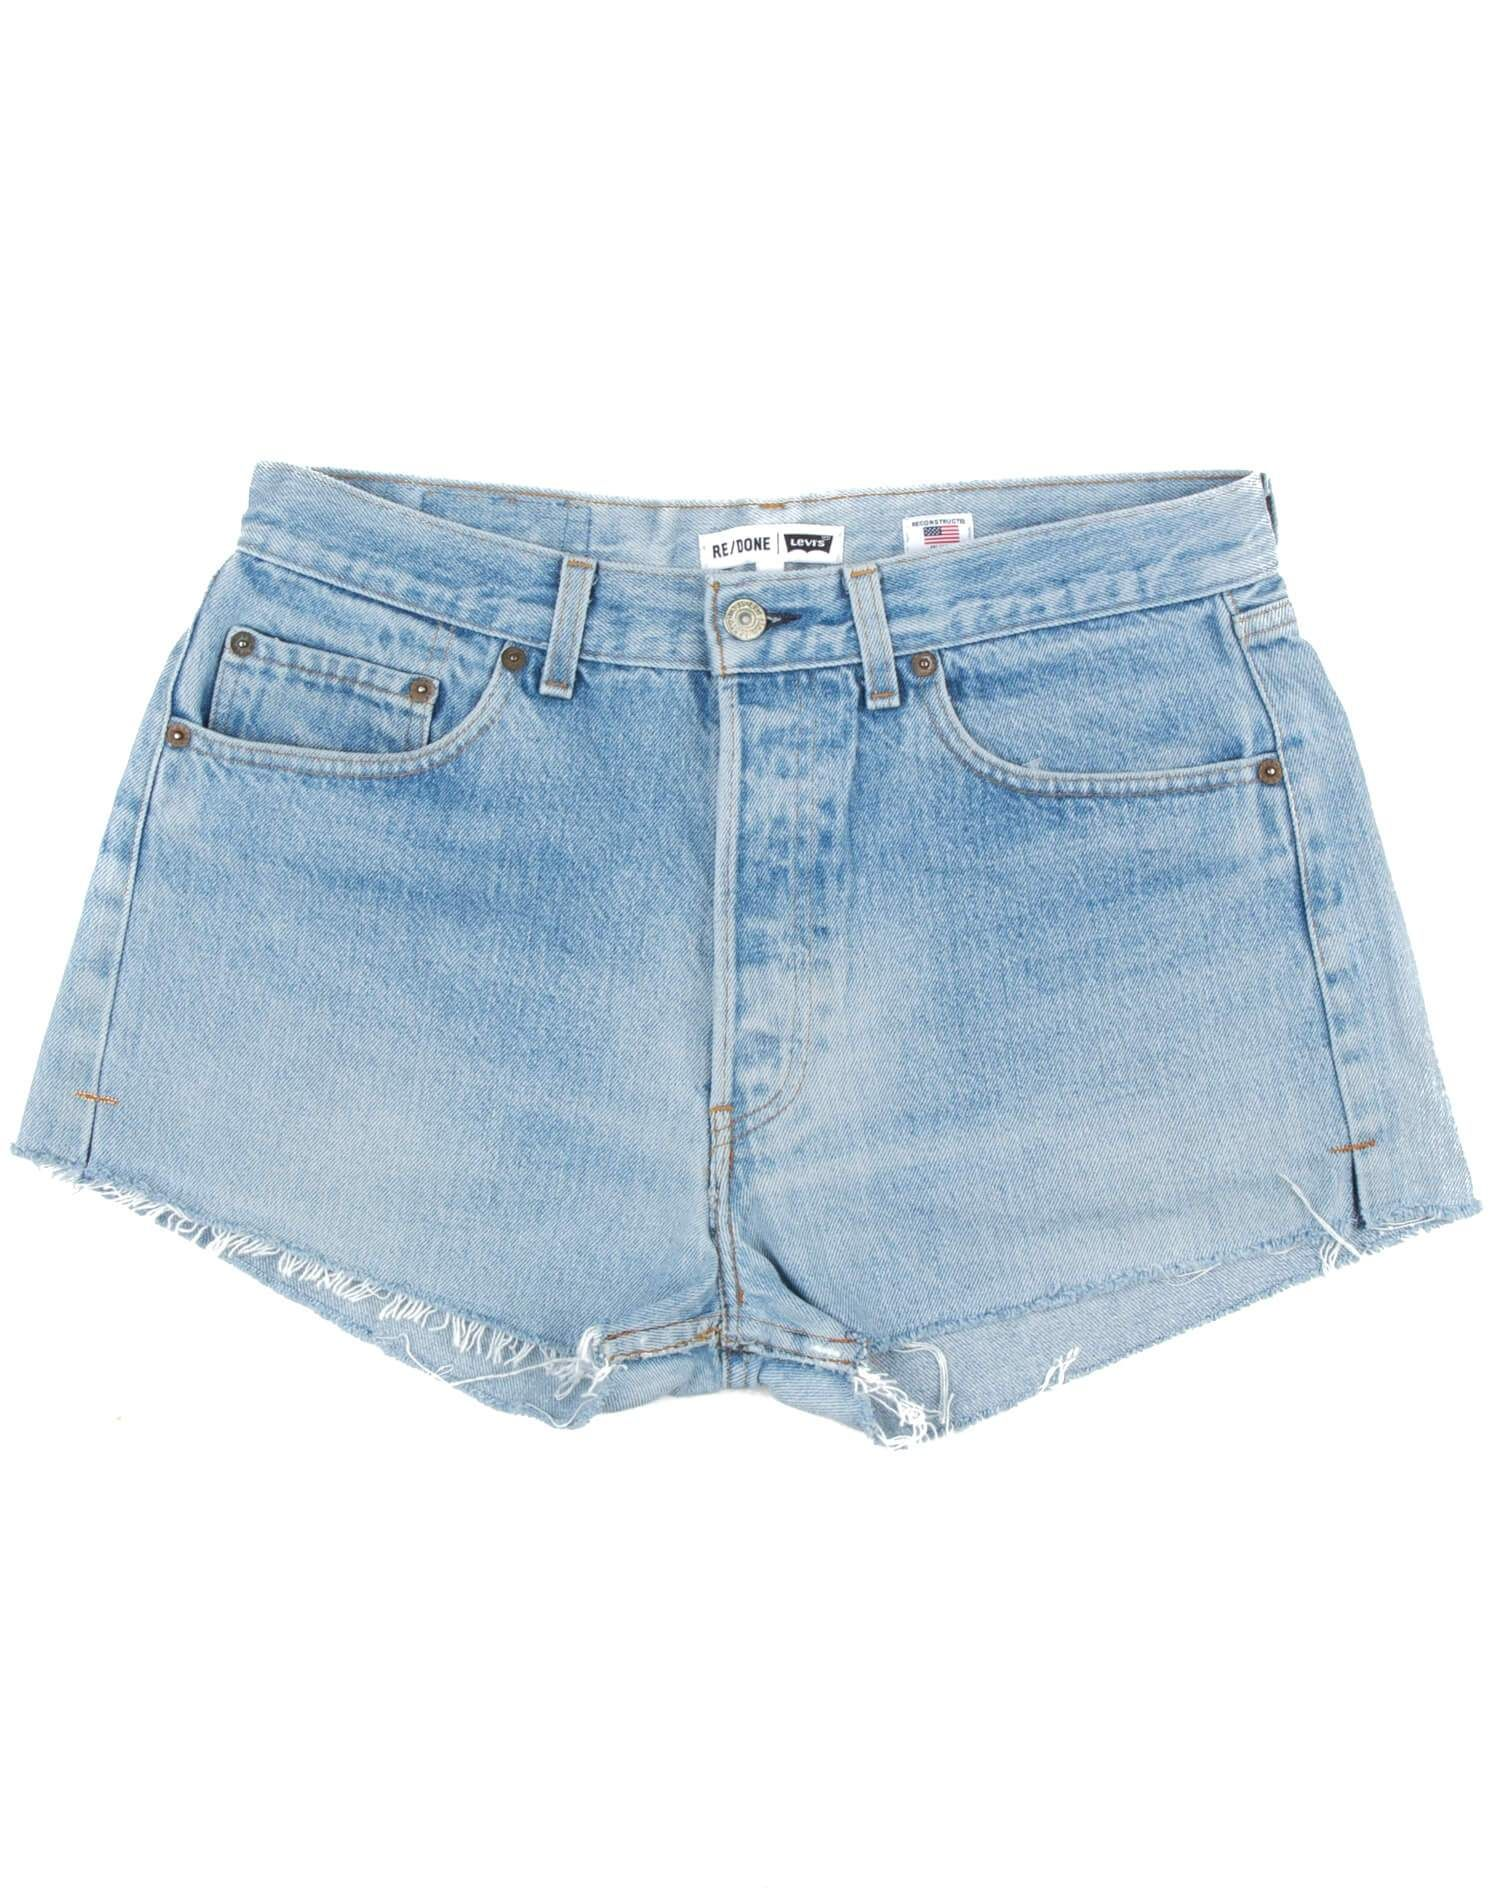 Vintage Levi's | The Shorts | Light Blue | Size 27 | No. 27TS1175379 | Denim #lightblueshorts